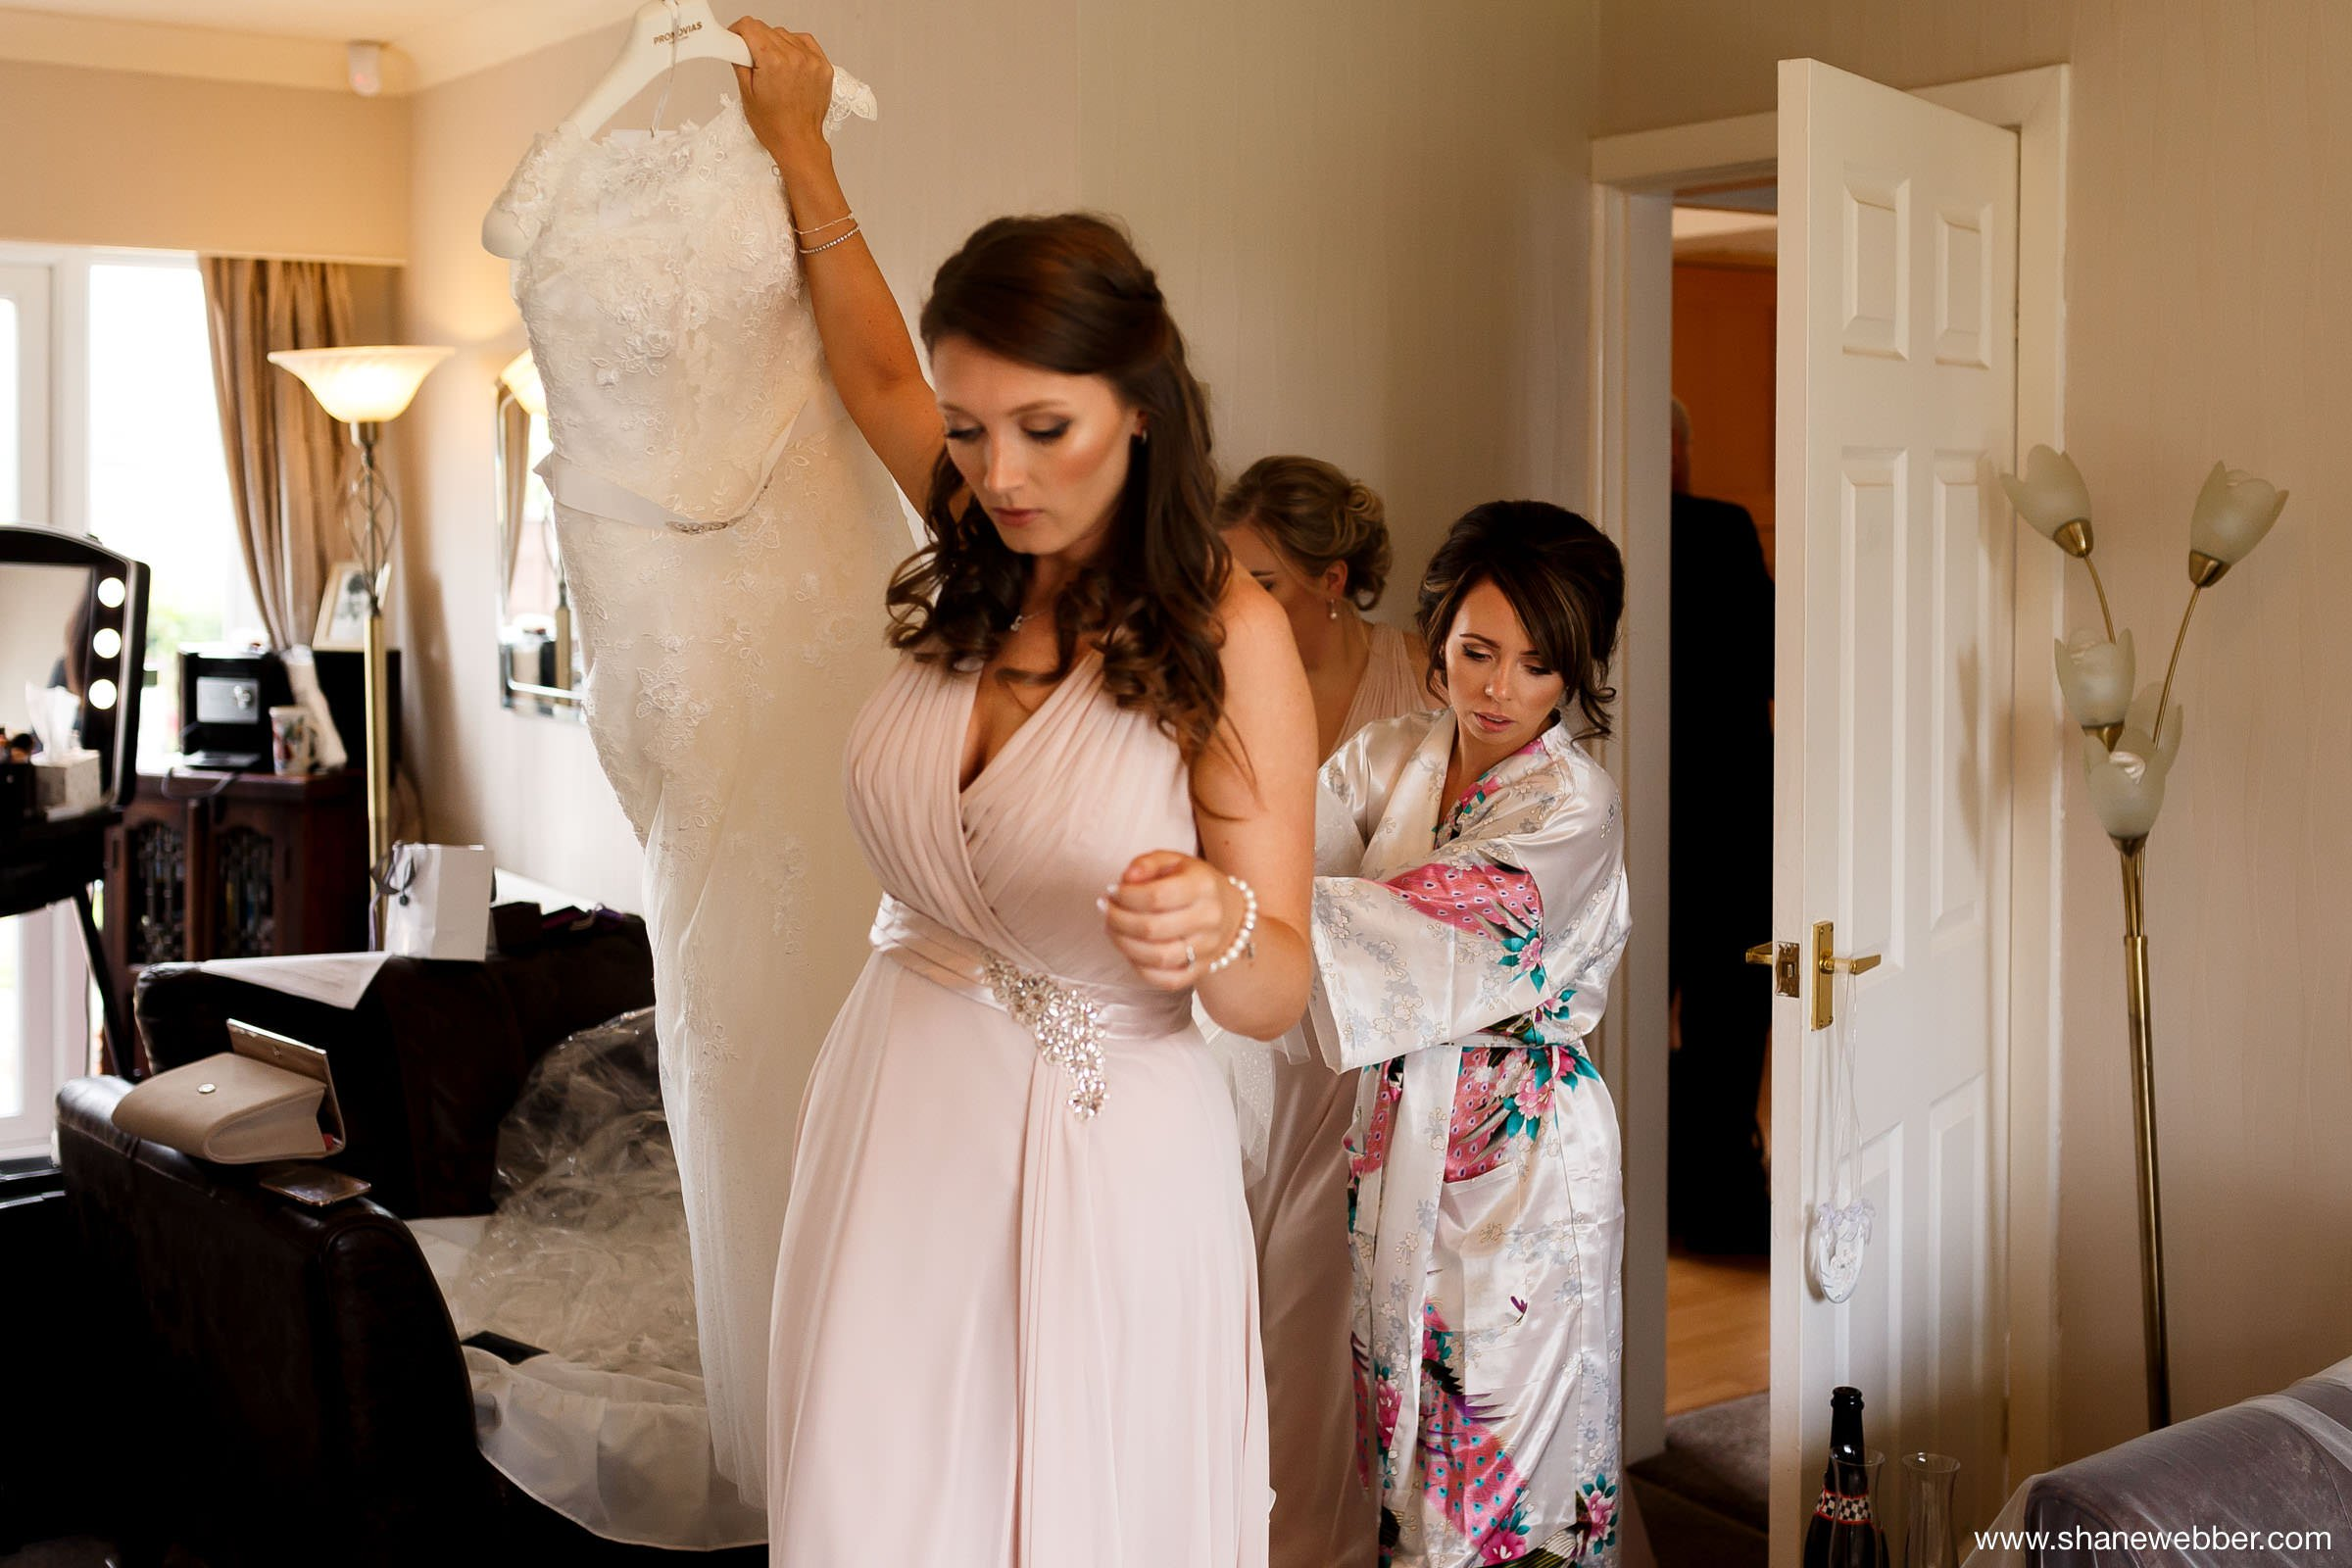 Photo of bridesmaids carrying wedding dress